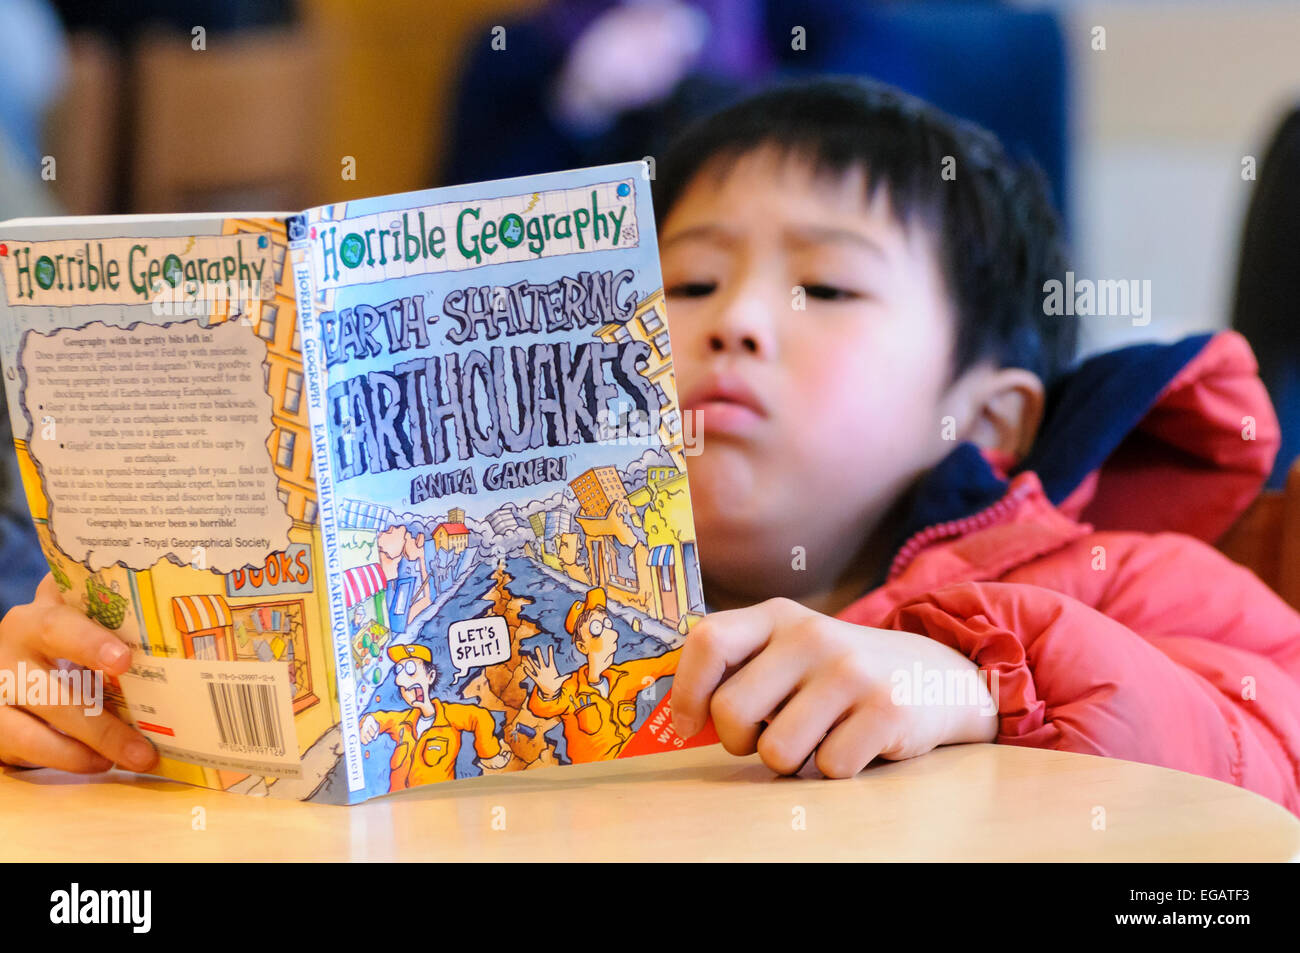 A young Japanese boy reads a book on Earthquakes a few days after the Fukushima disaster - Stock Image